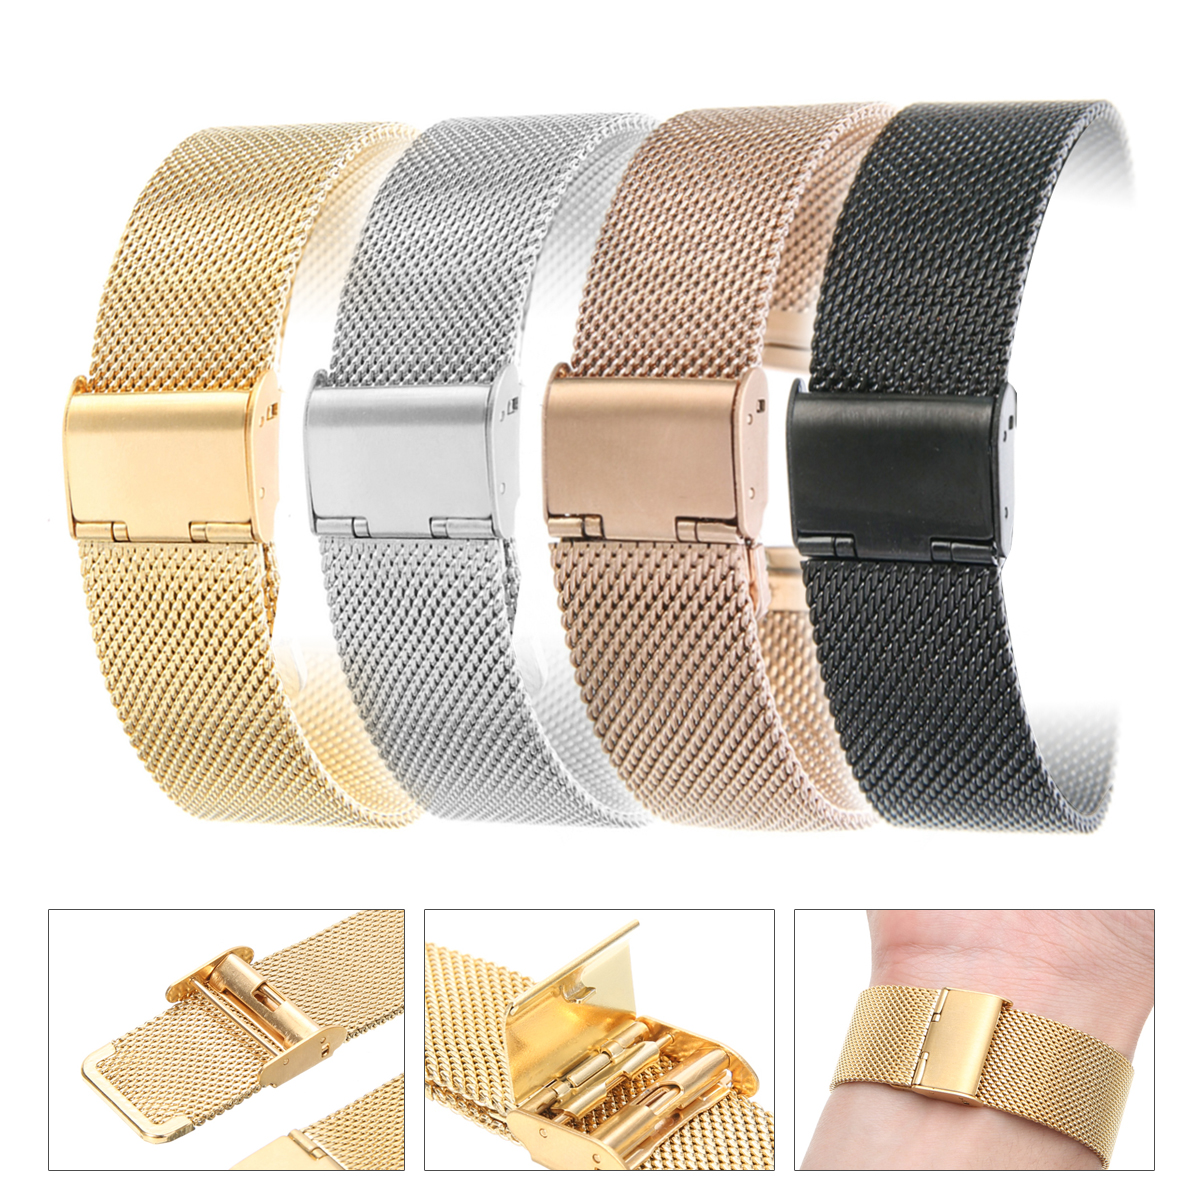 Shellhard 12mm/14mm/16mm/18mm/20mm/22mm/24mm Stainless Steel Watch Strap 4 Colors Straight End Mesh Buckle Watch Band Strap new mens rose gold watch band 16mm 18mm 20mm 22mm 24mm silver black stainless steel watch band strap straight end bracelet